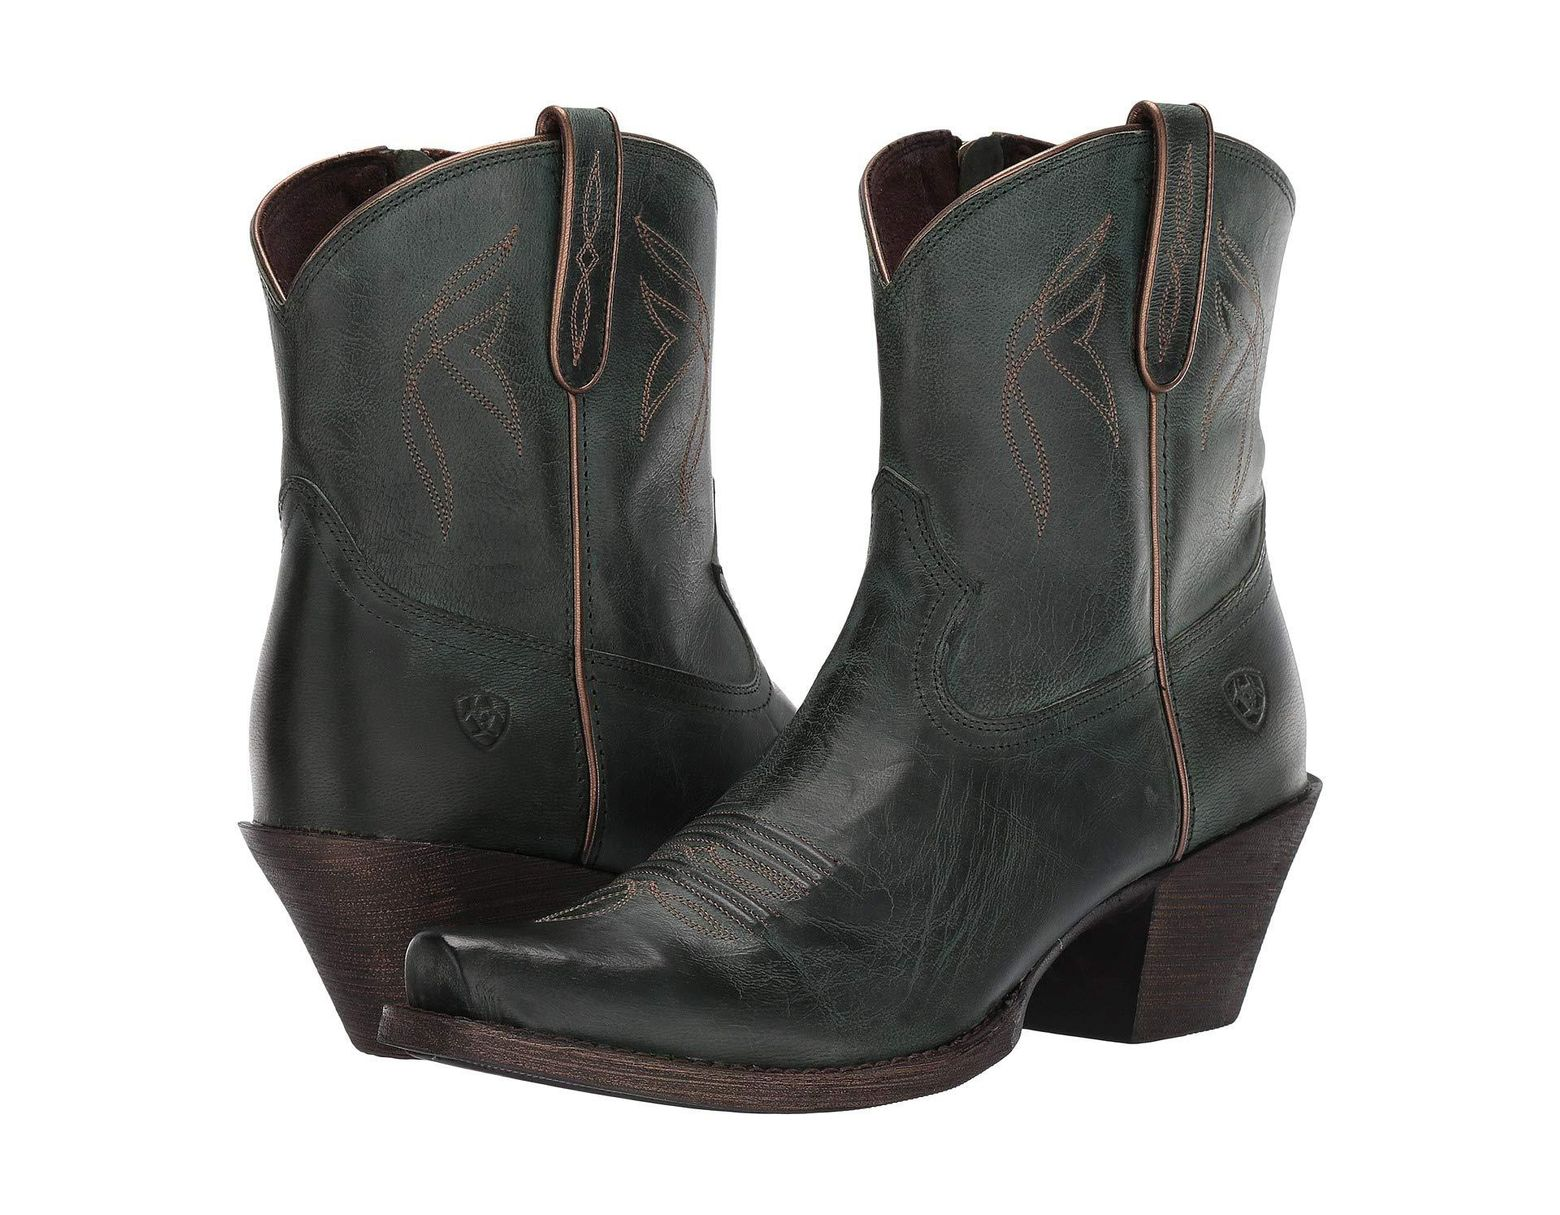 8234c21a567 Ariat Lovely (jackal Black) Cowboy Boots in Brown - Lyst